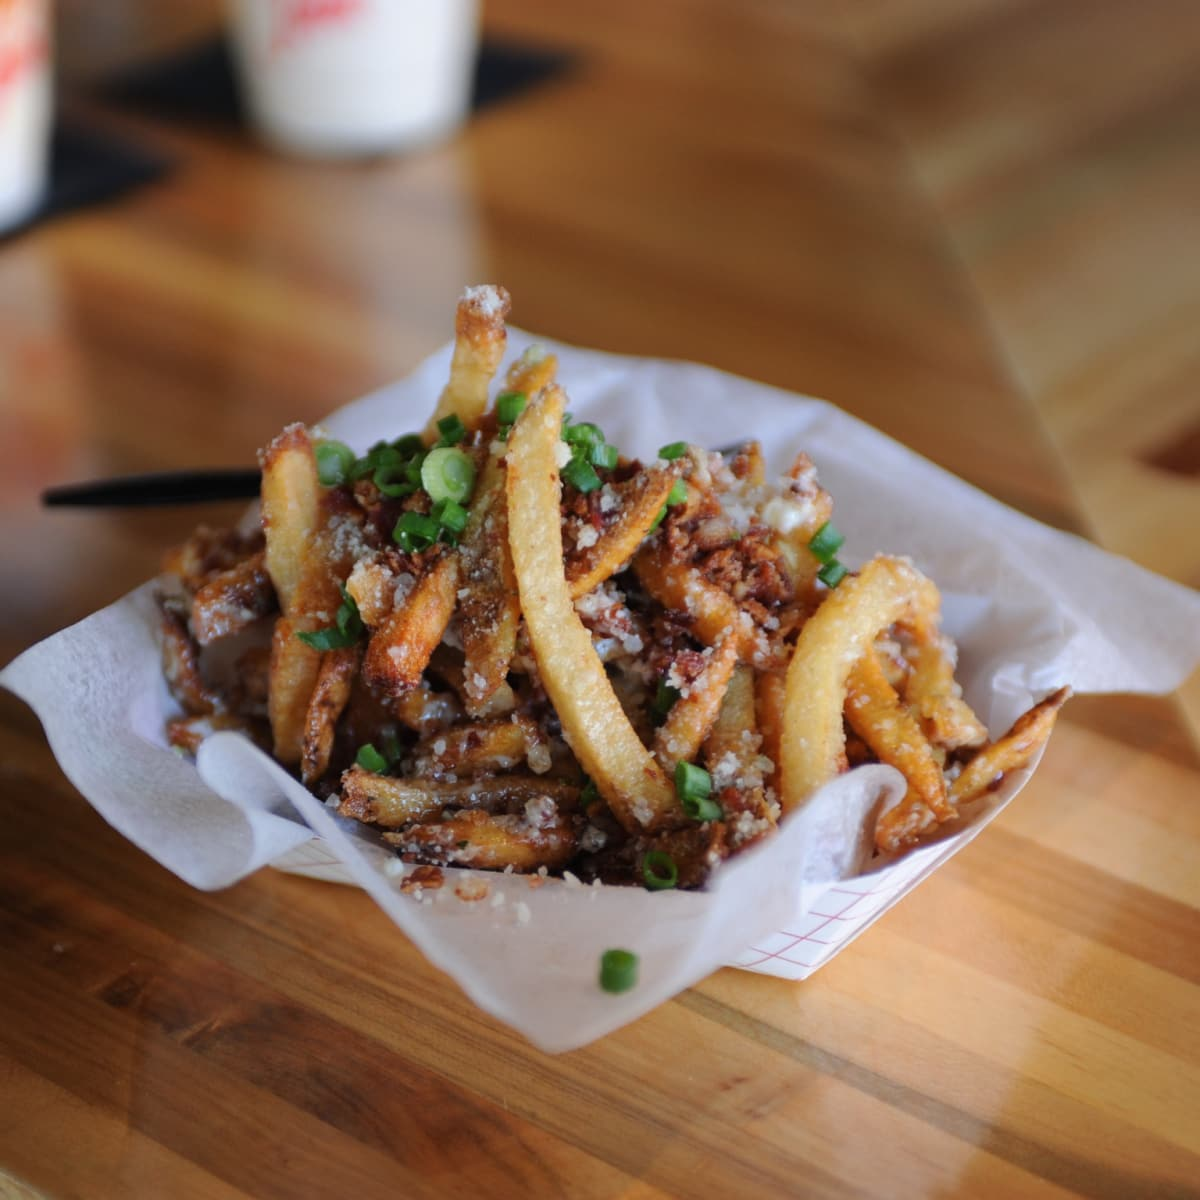 The Burger Joint bacon fries